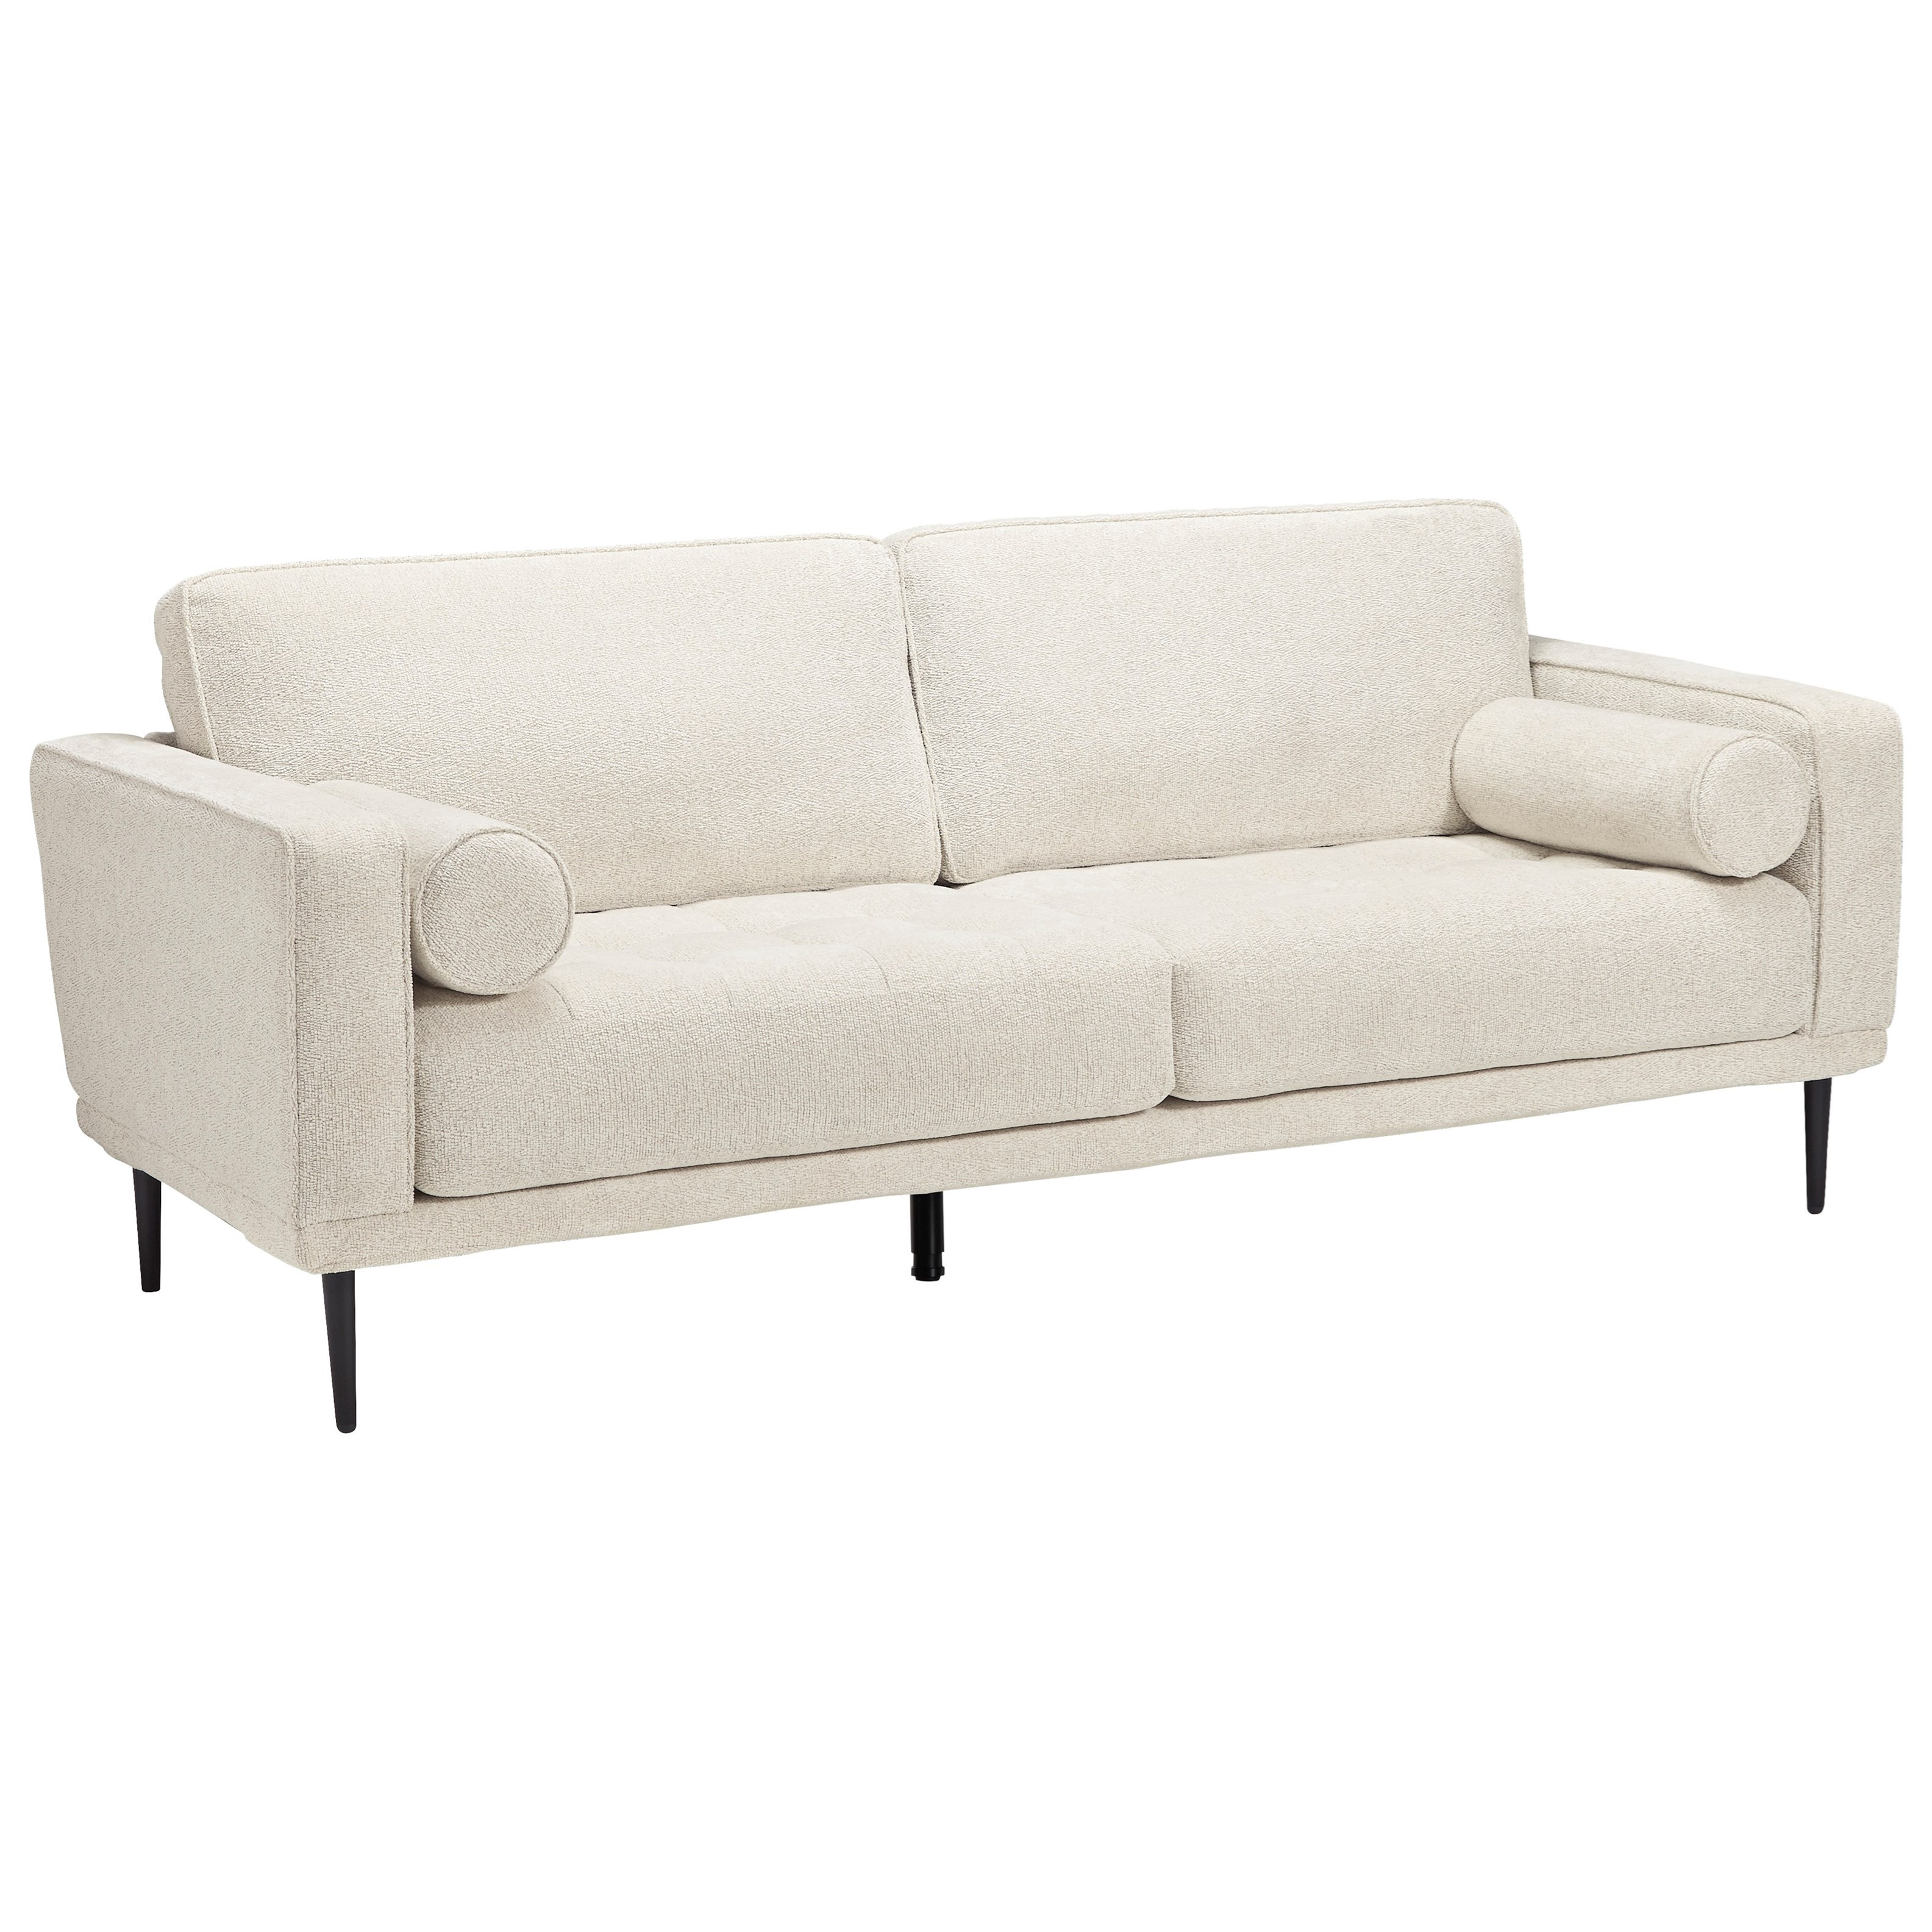 Caladeron Sofa by Signature Design by Ashley at Zak's Warehouse Clearance Center